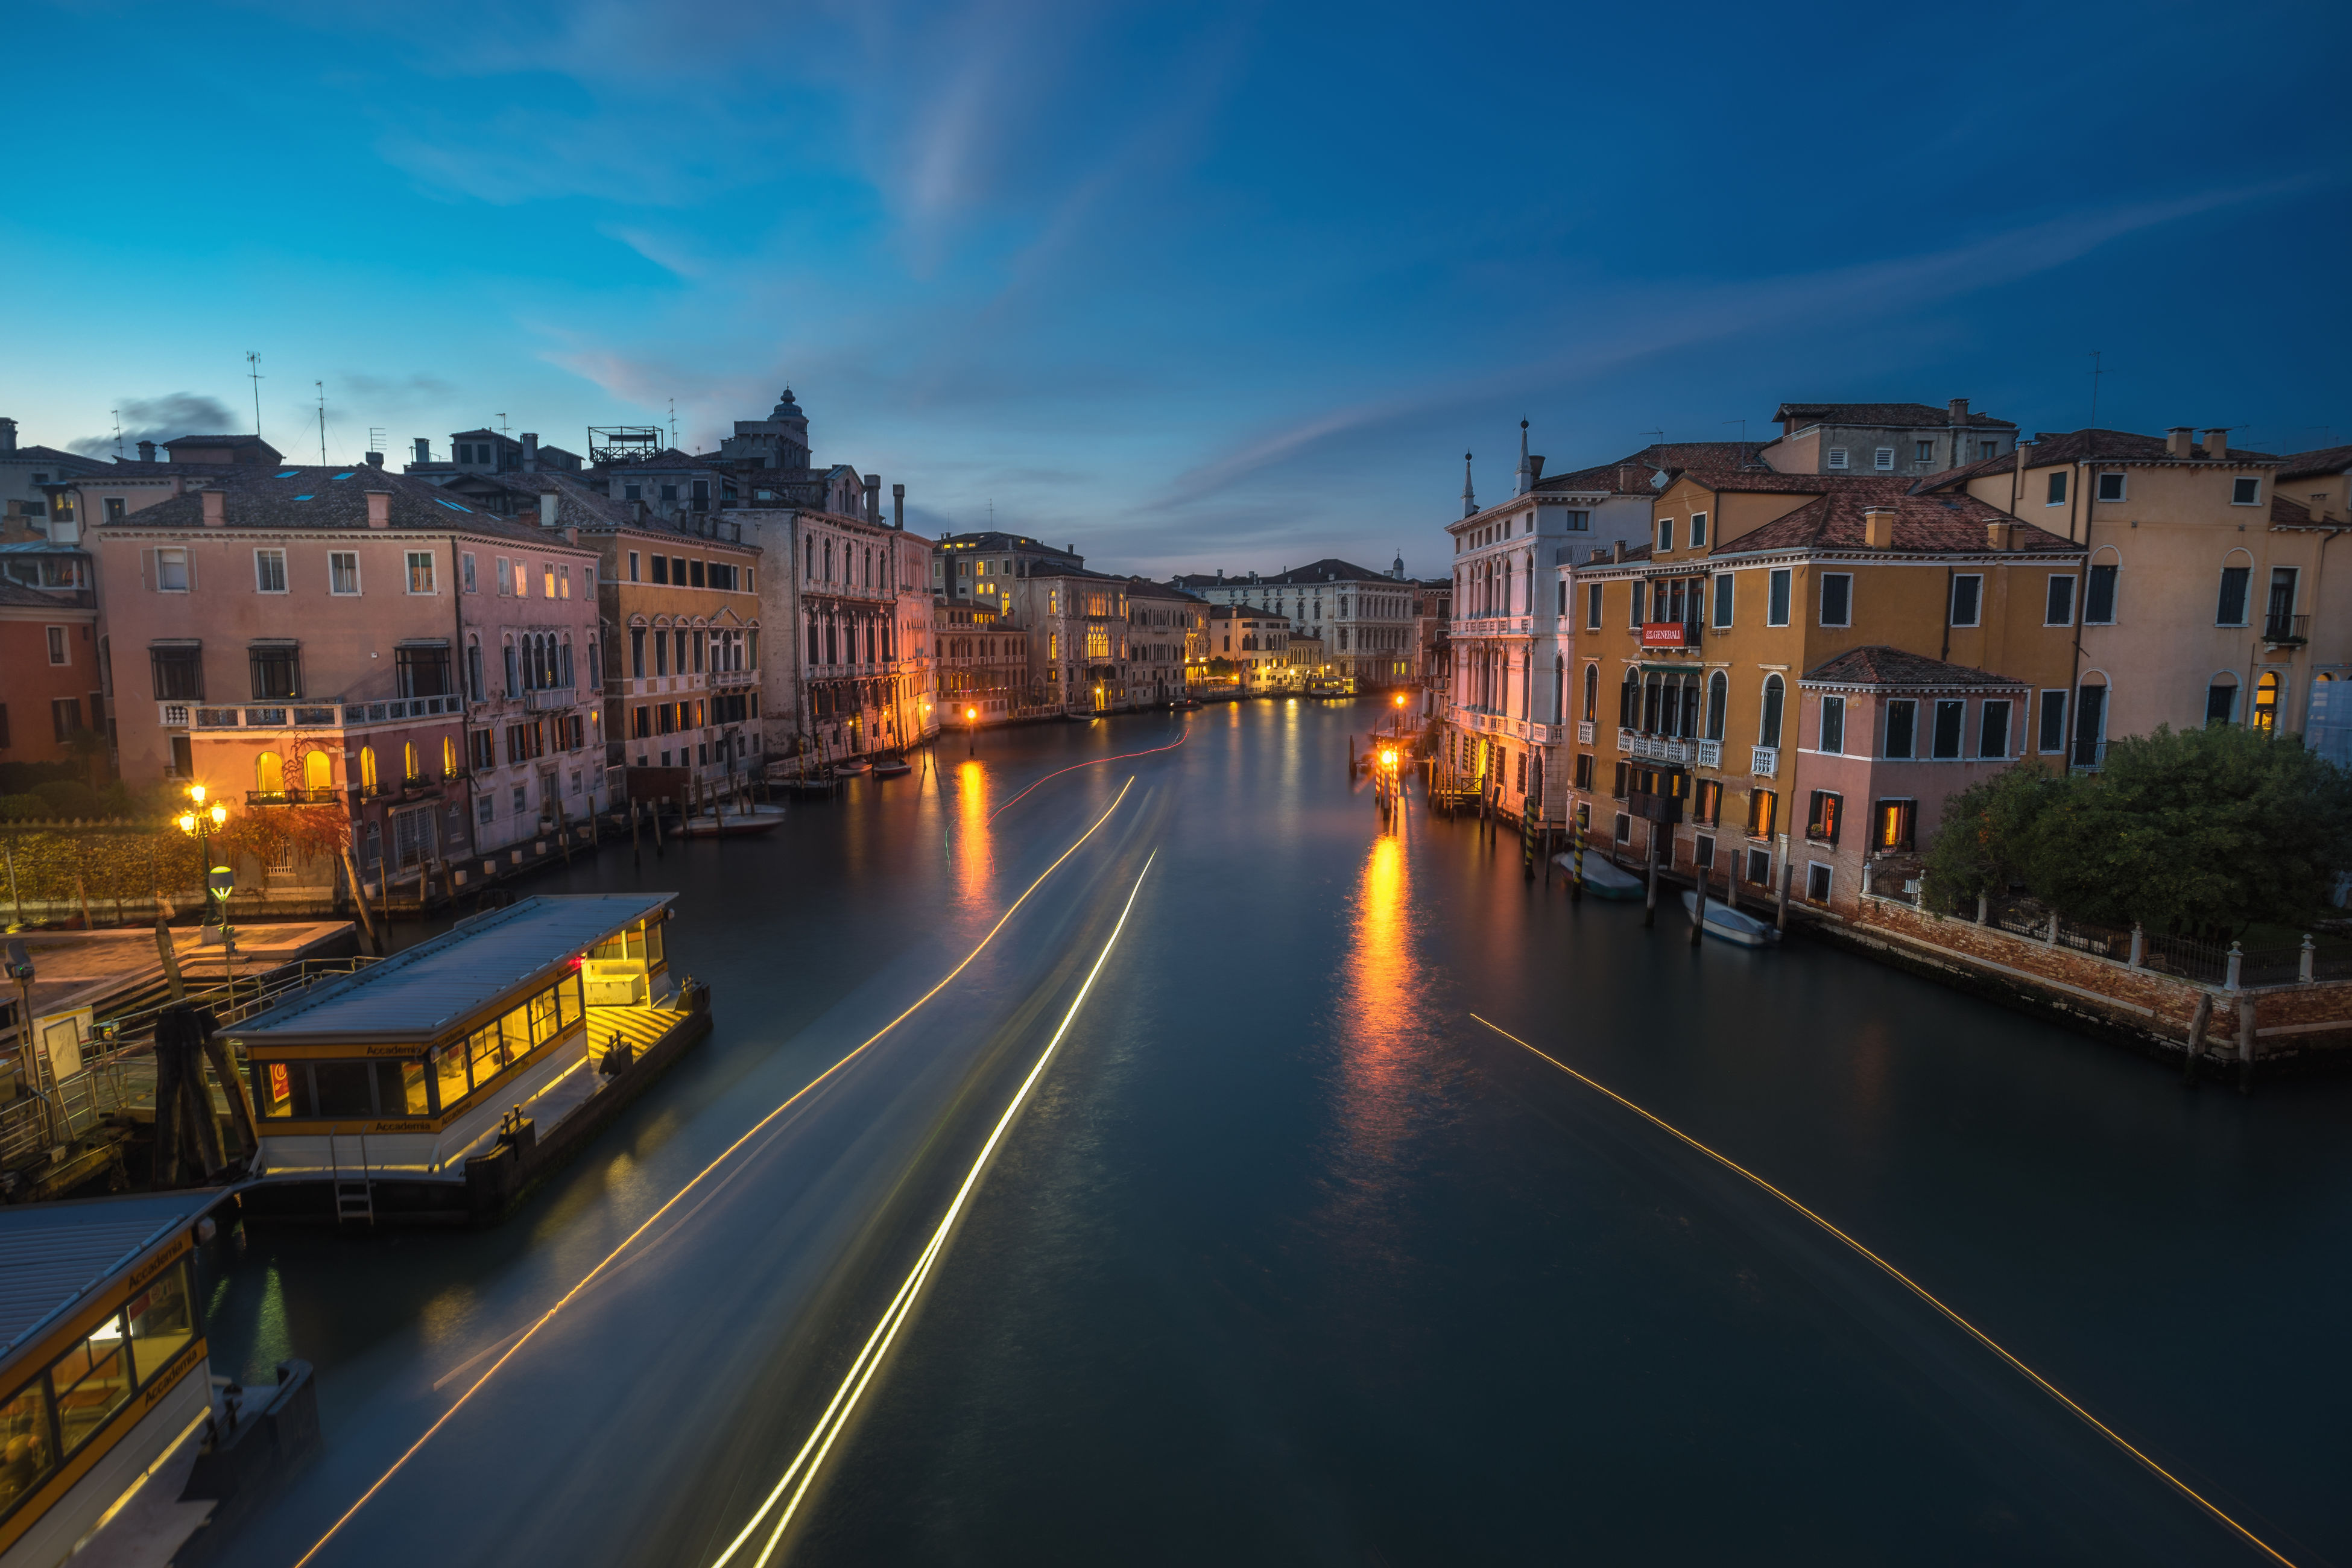 water, illuminated, architecture, city, reflection, sky, transportation, built structure, building exterior, canal, high angle view, nautical vessel, cityscape, bridge - man made structure, waterfront, sunset, no people, outdoors, connection, night